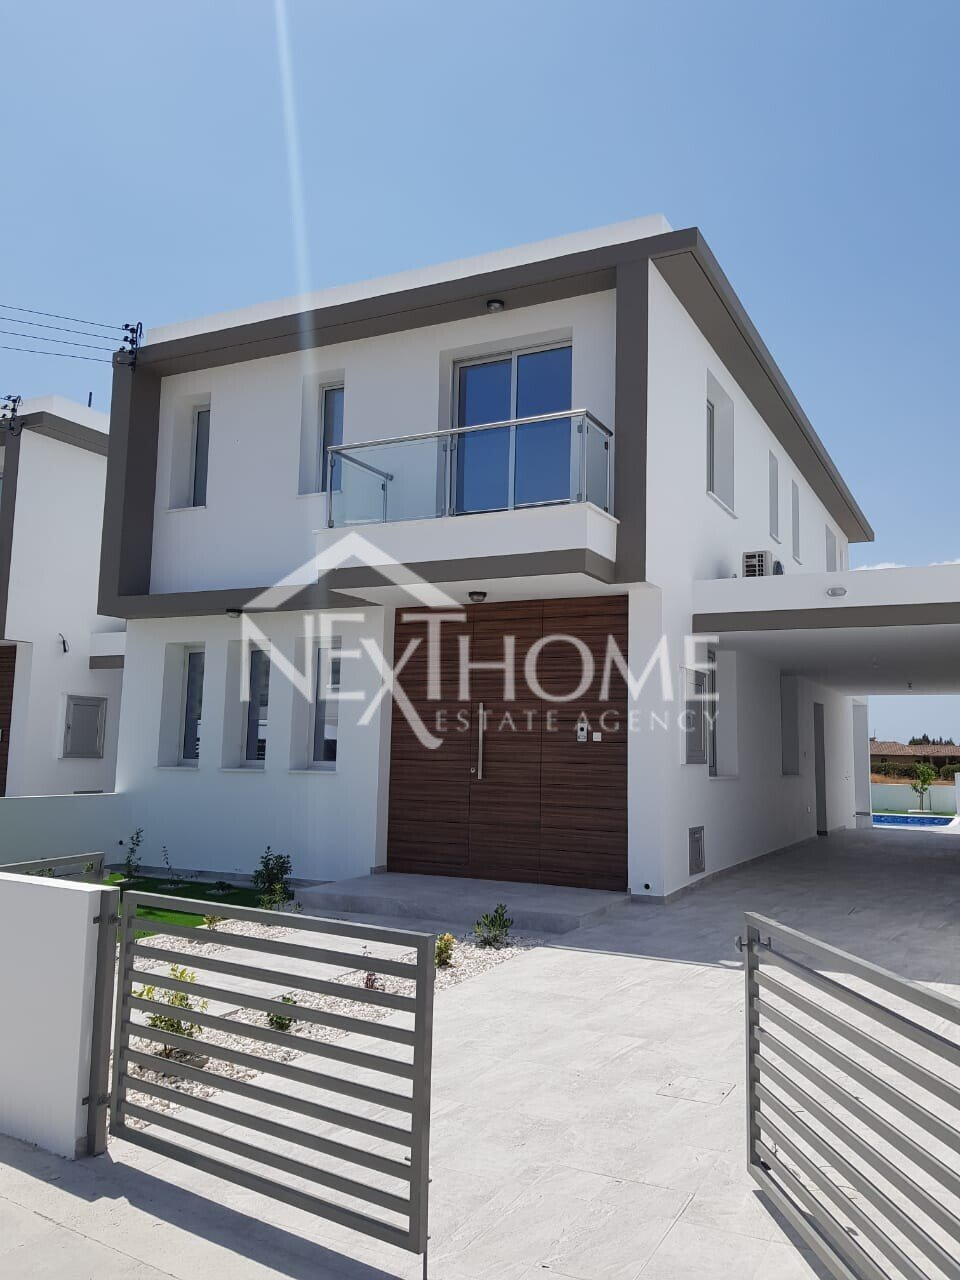 3 bedroom detached house with a pool in Livadia, Larnaca